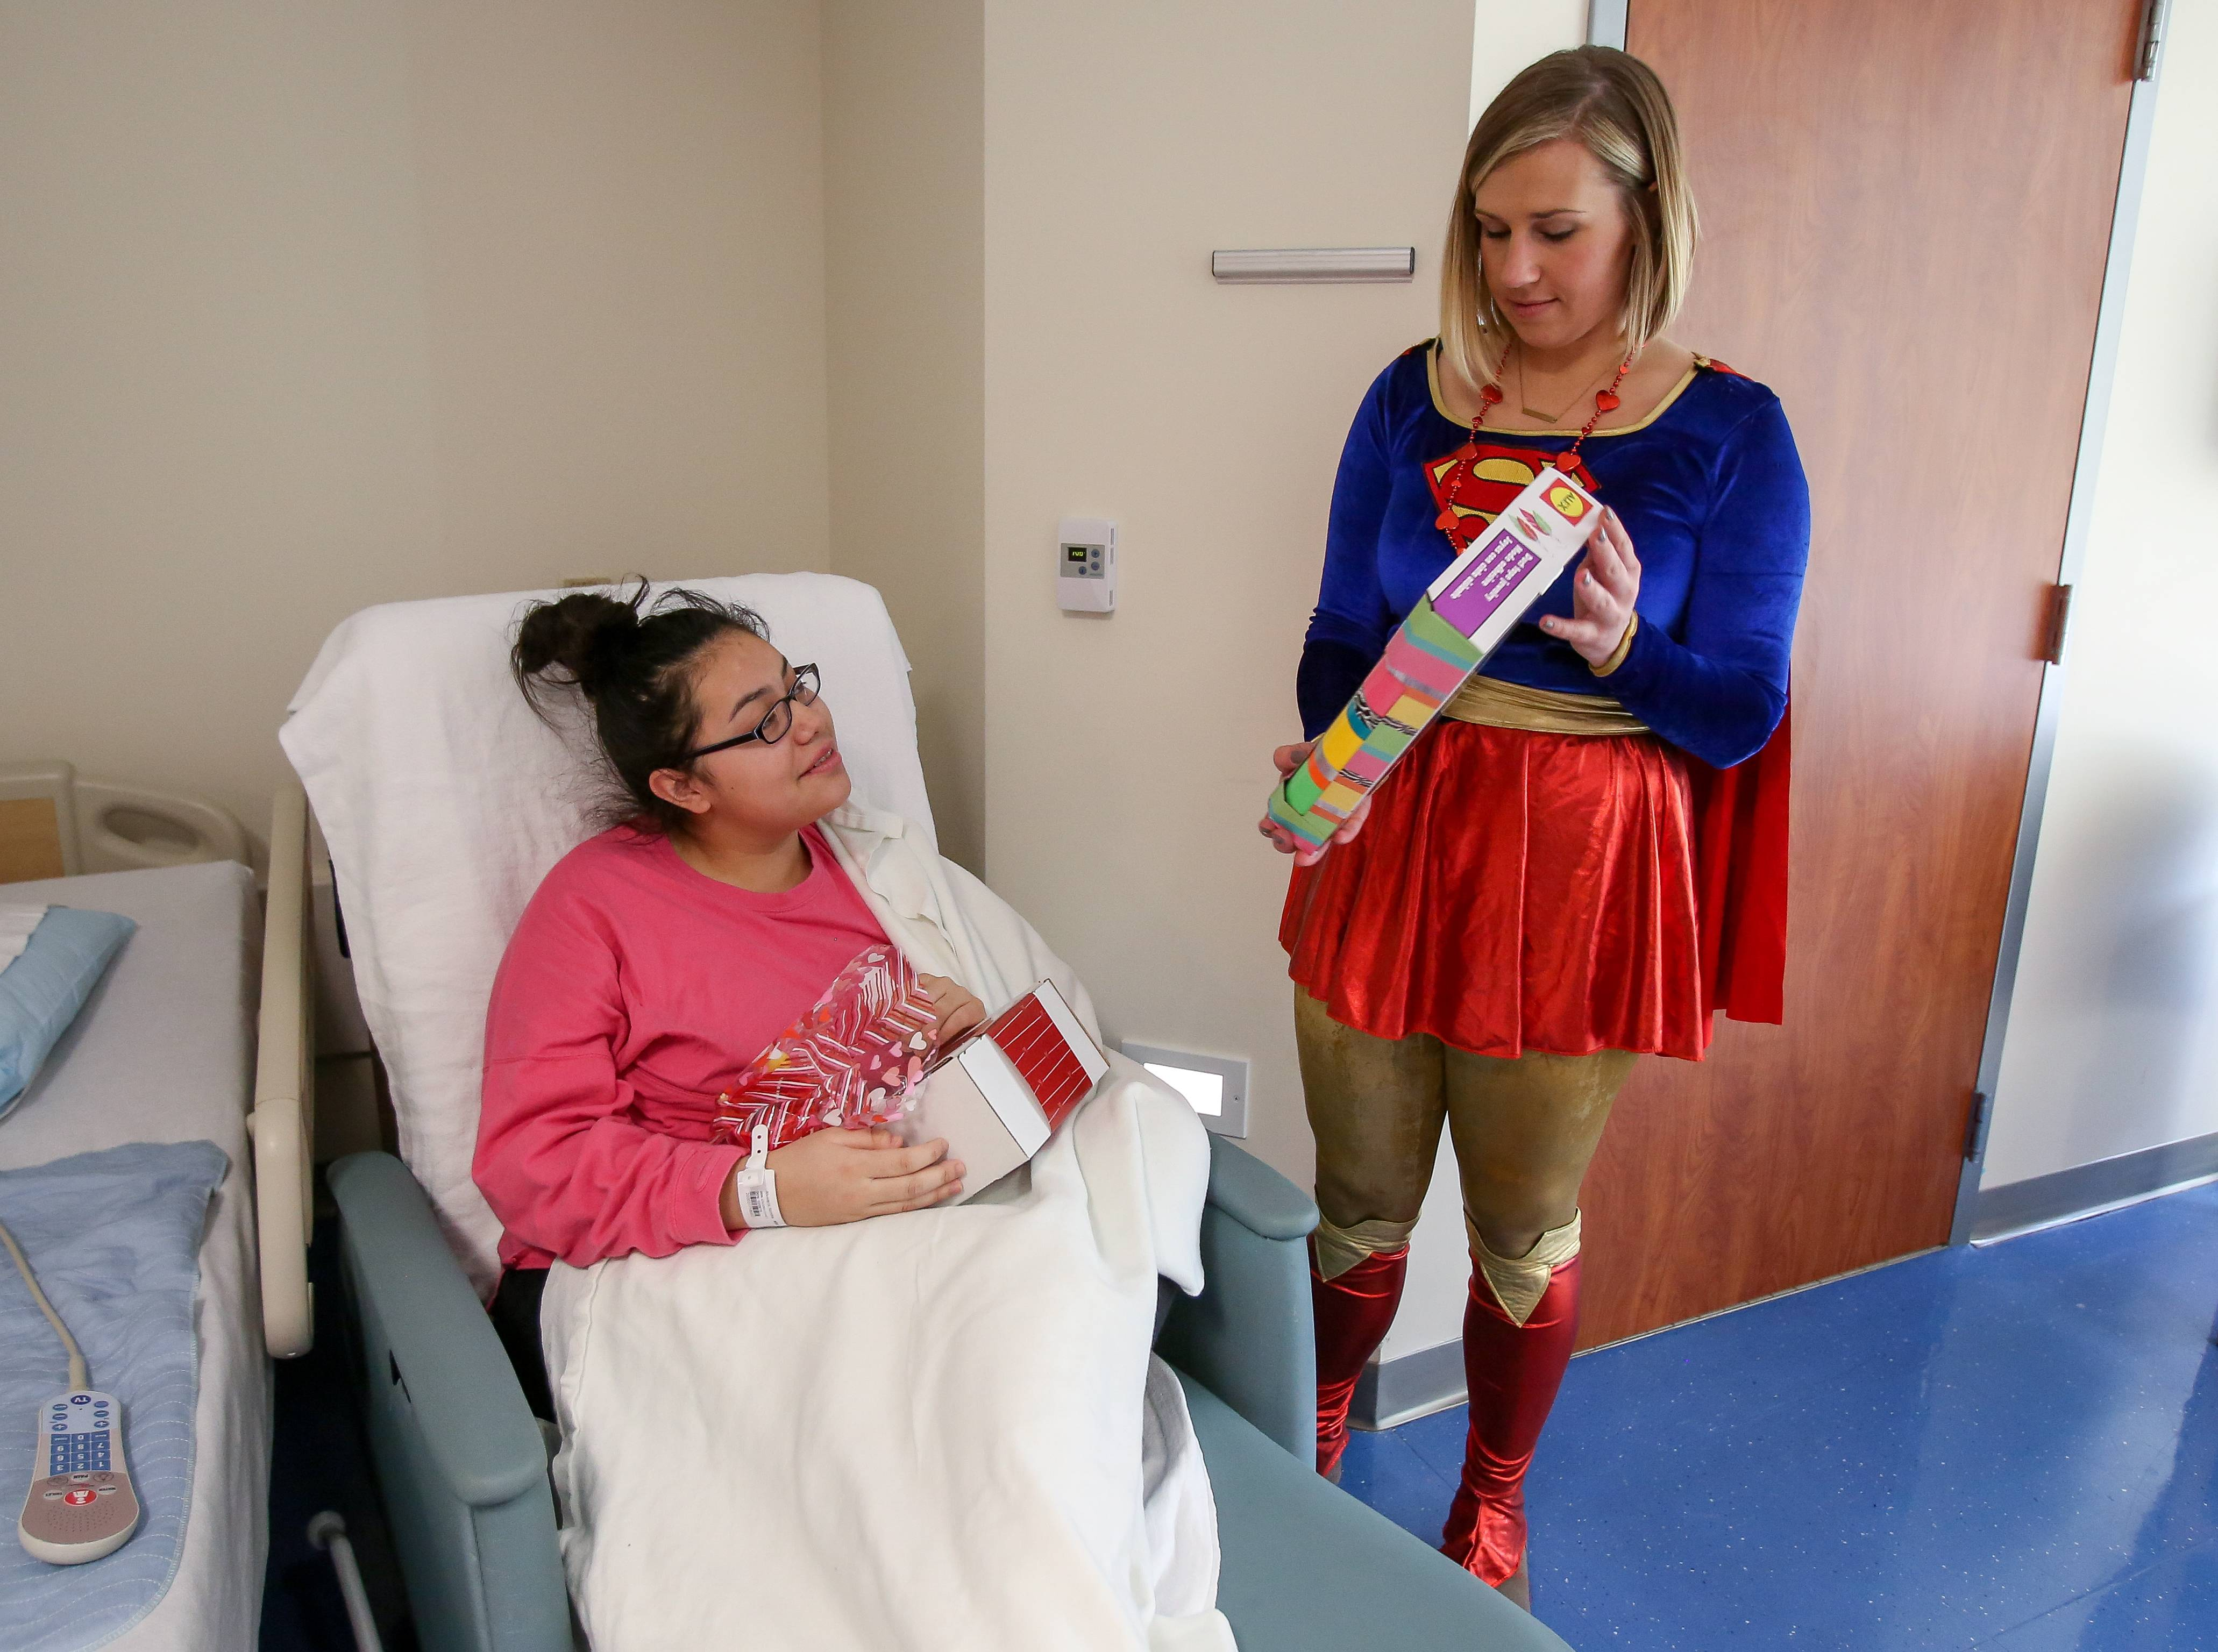 Supergirl, played by Morgan Olenski, delivers a Valentine's Day present to Alondra Alvarado, 15, of Addison on Thursday at Northwestern Medicine Central DuPage Hospital in Winfield